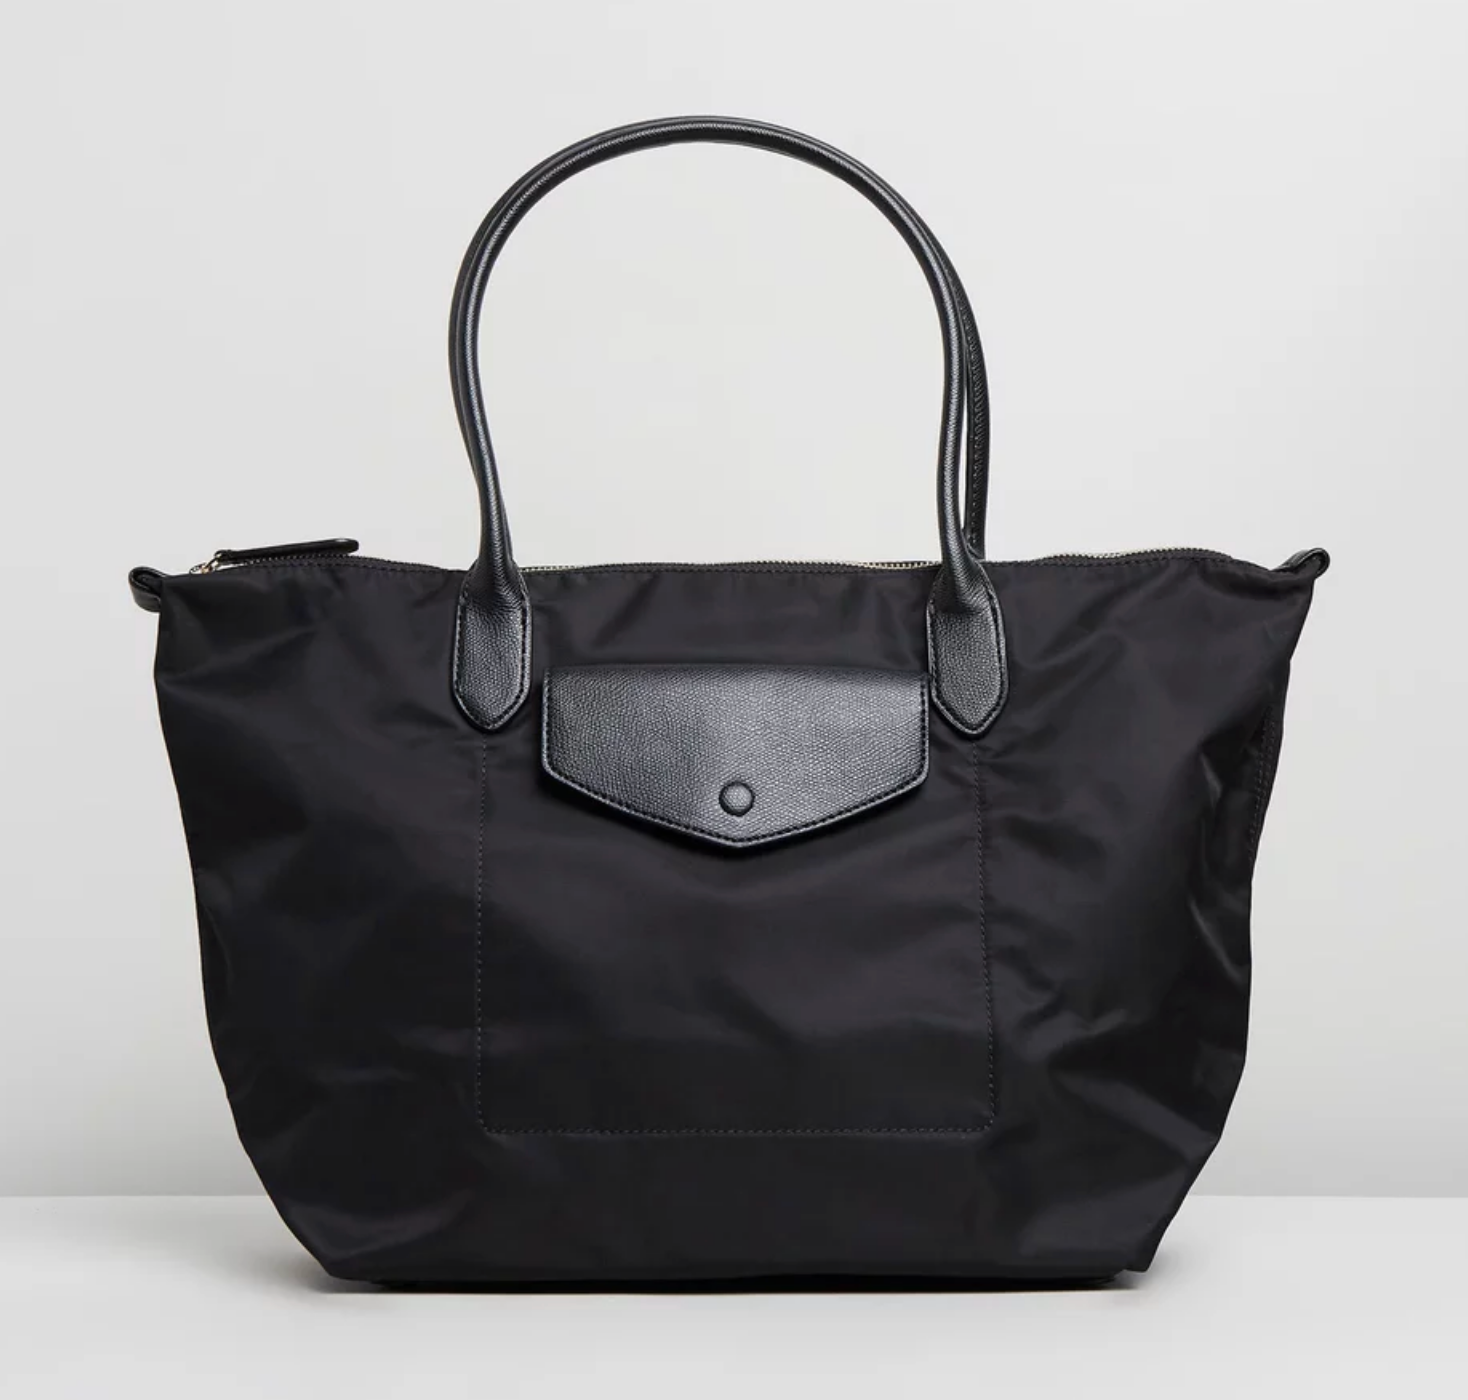 Banana Republic - Black feminine nylon tote bag